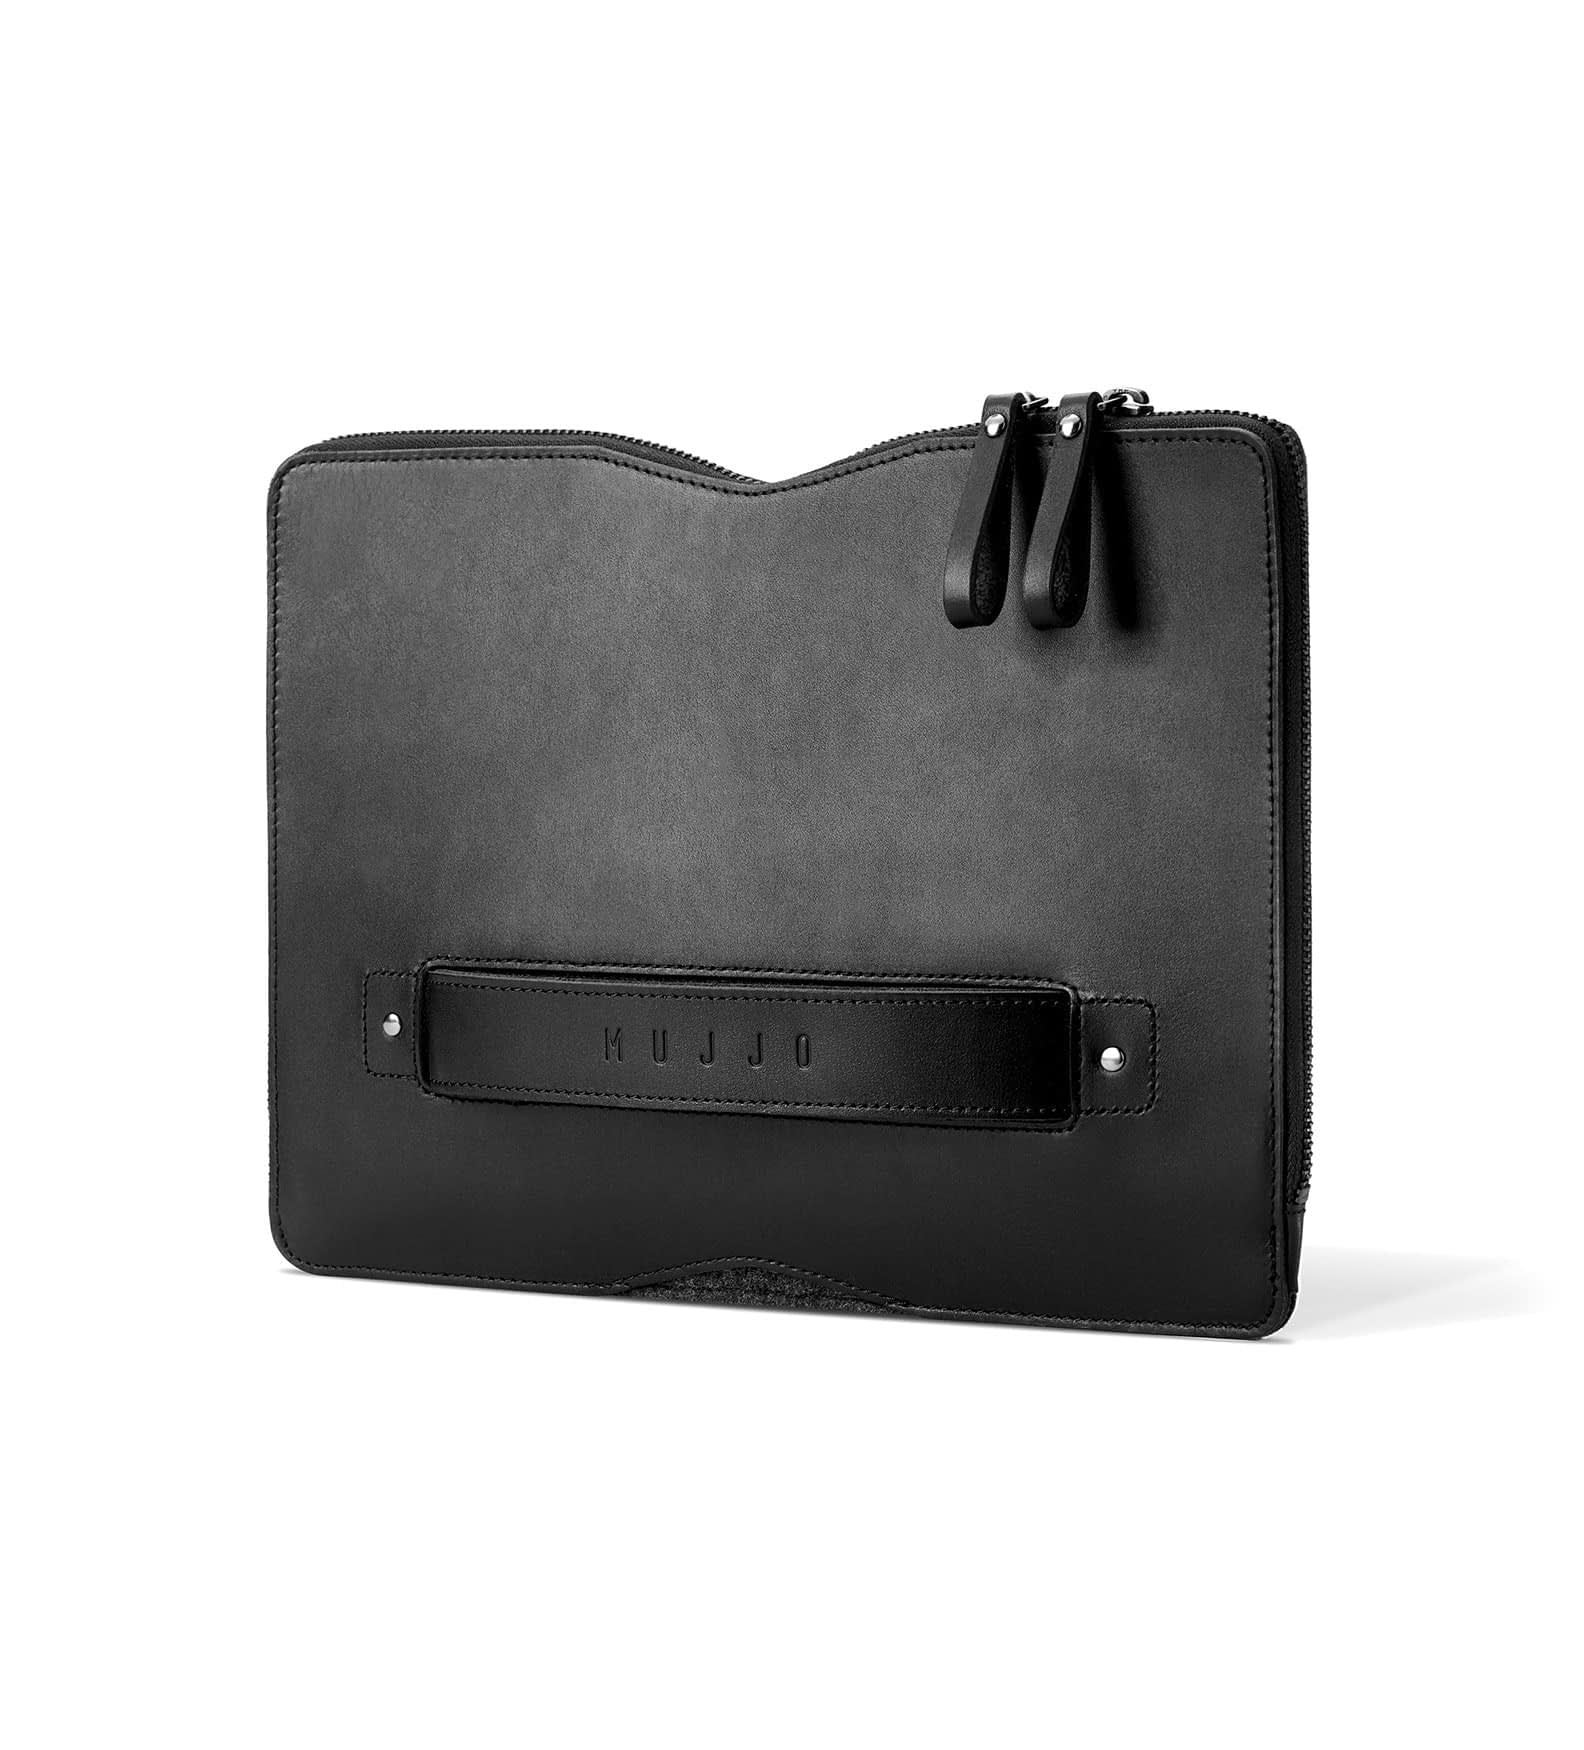 carry on folio sleeve for 12 macbook black 001